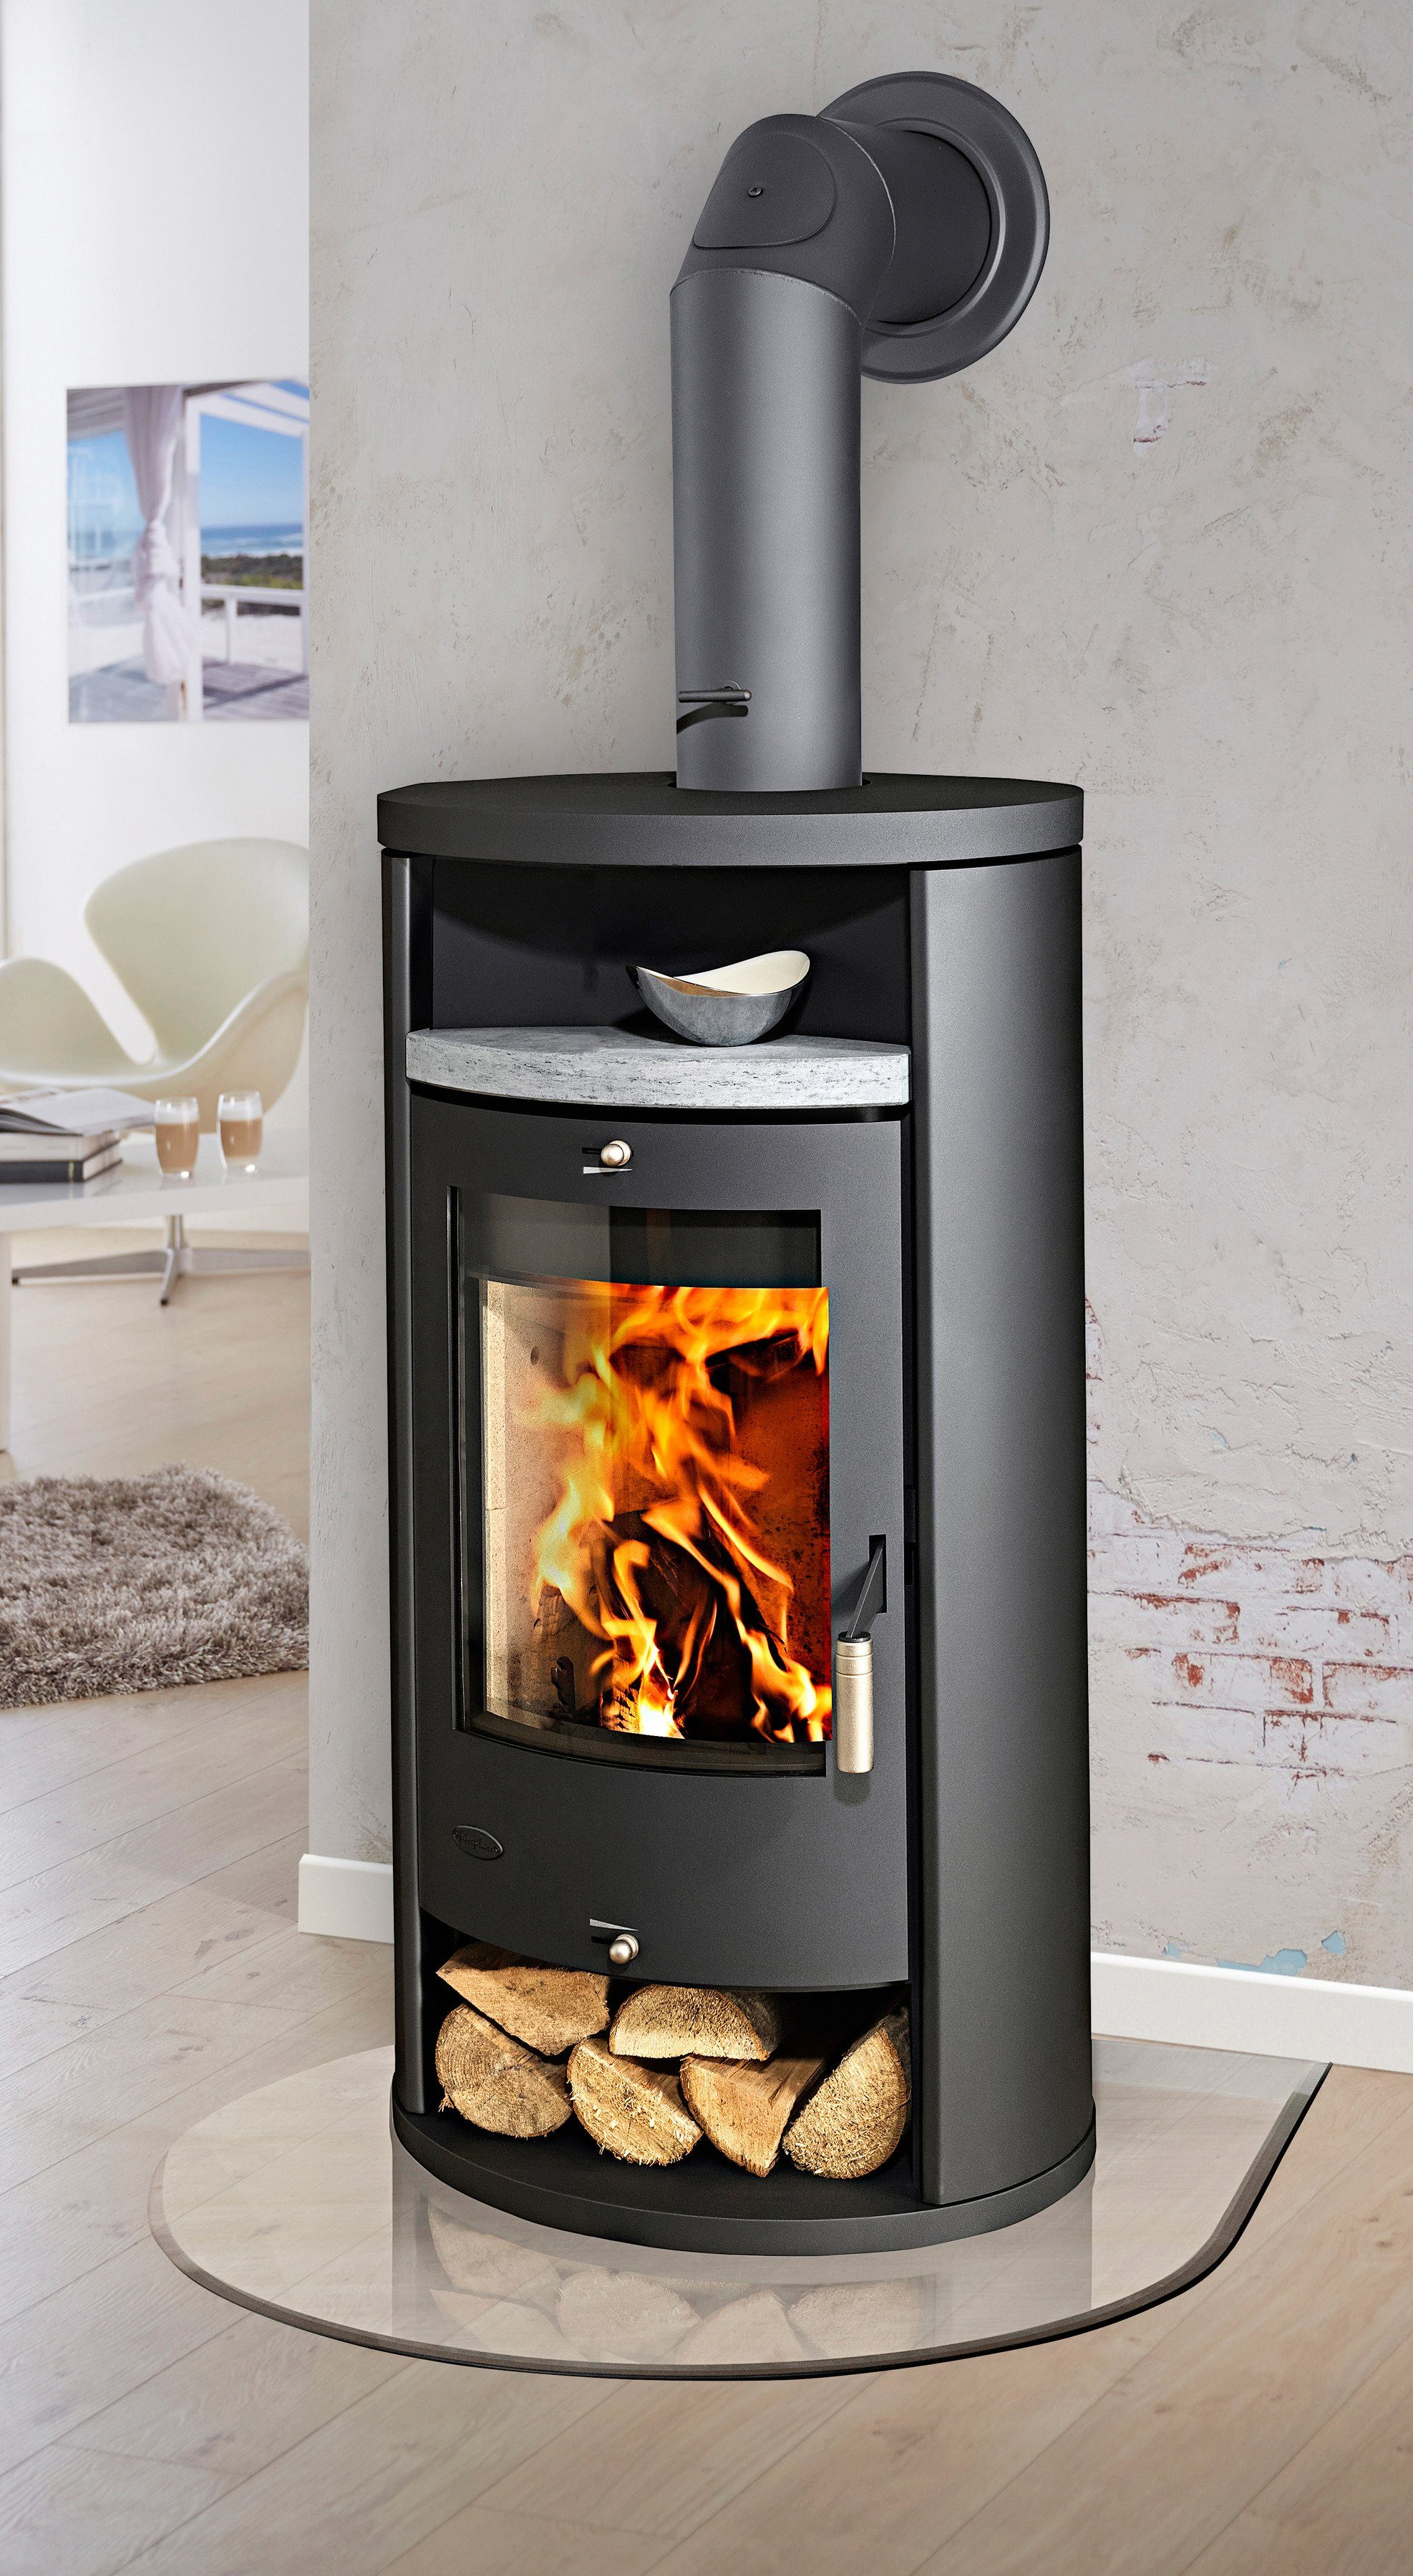 Kaminofen »Alicante«, Stahl, 8 kW, Fireplace